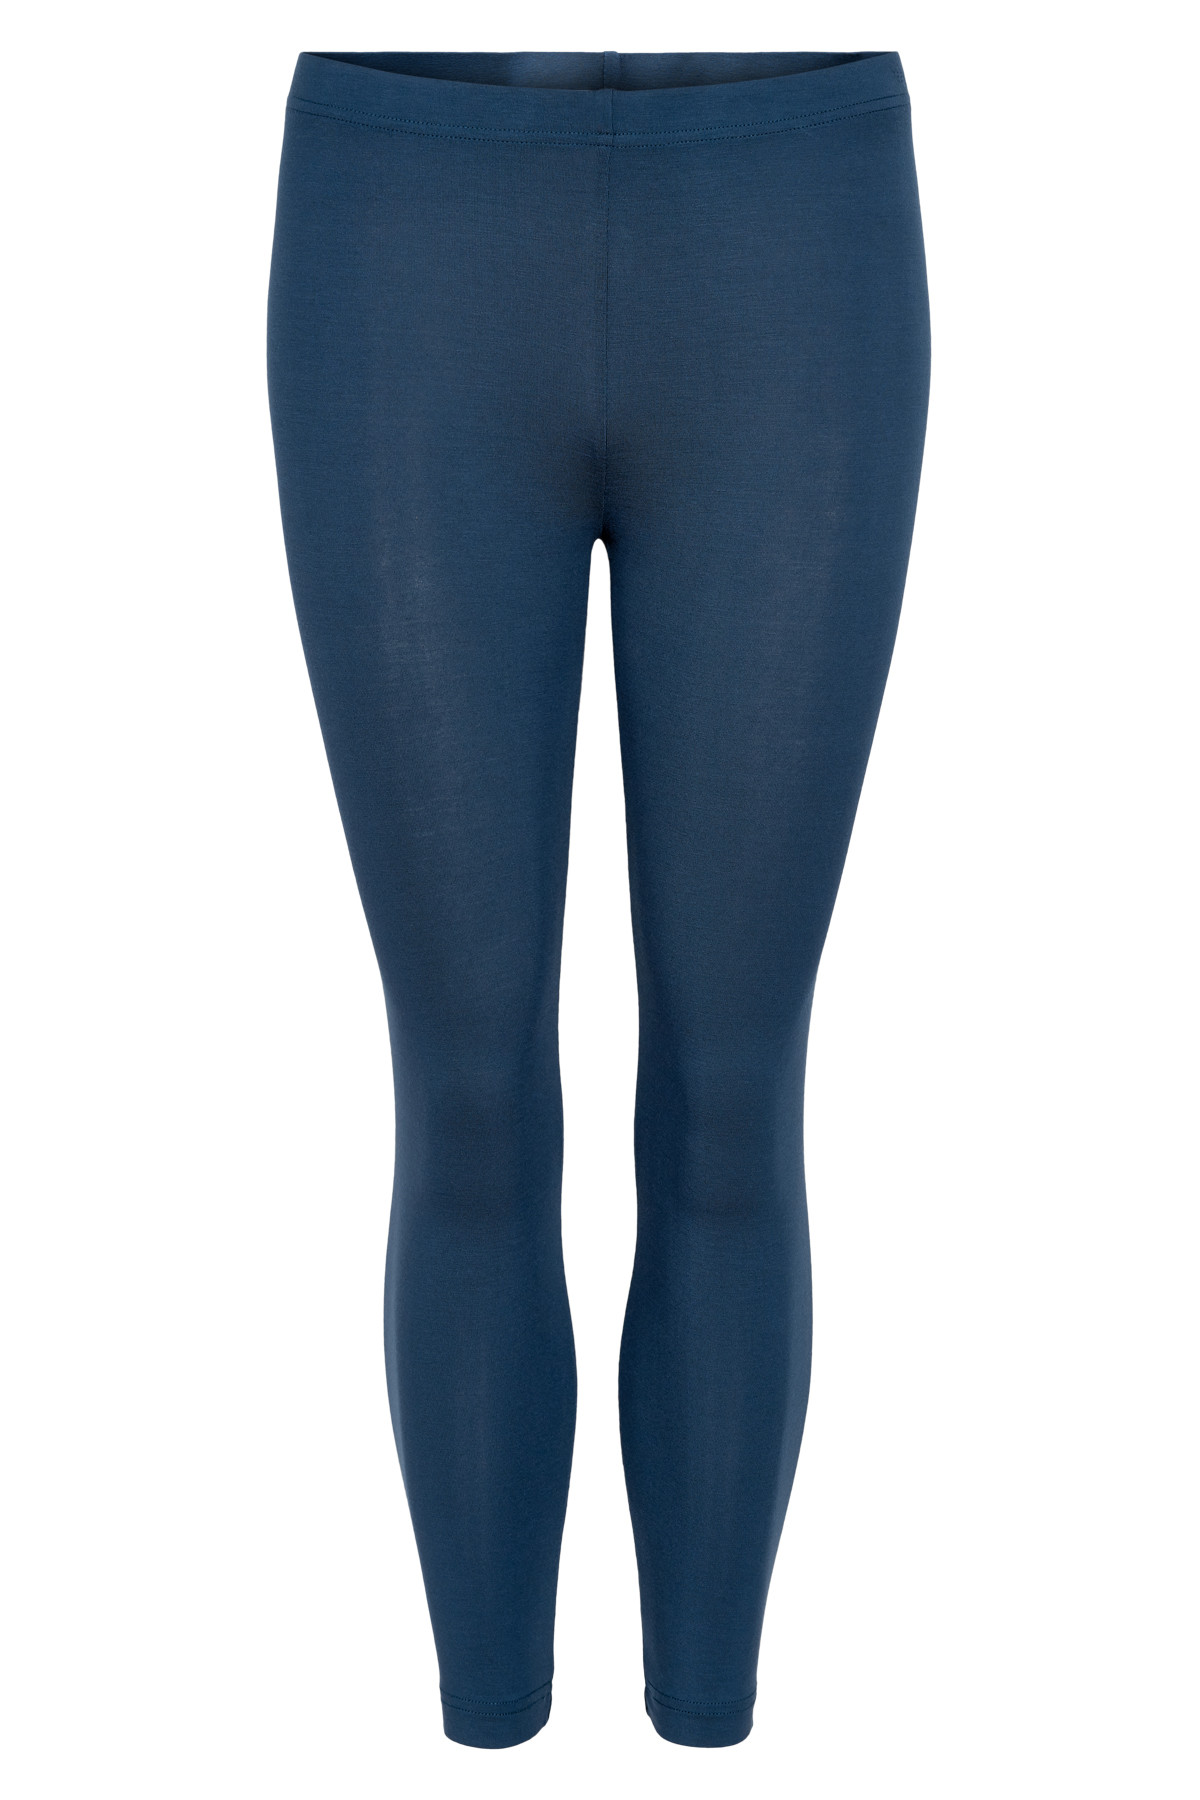 NOA NOA LEGGINGS 1-9383-1 00690 (Blue, XXL)